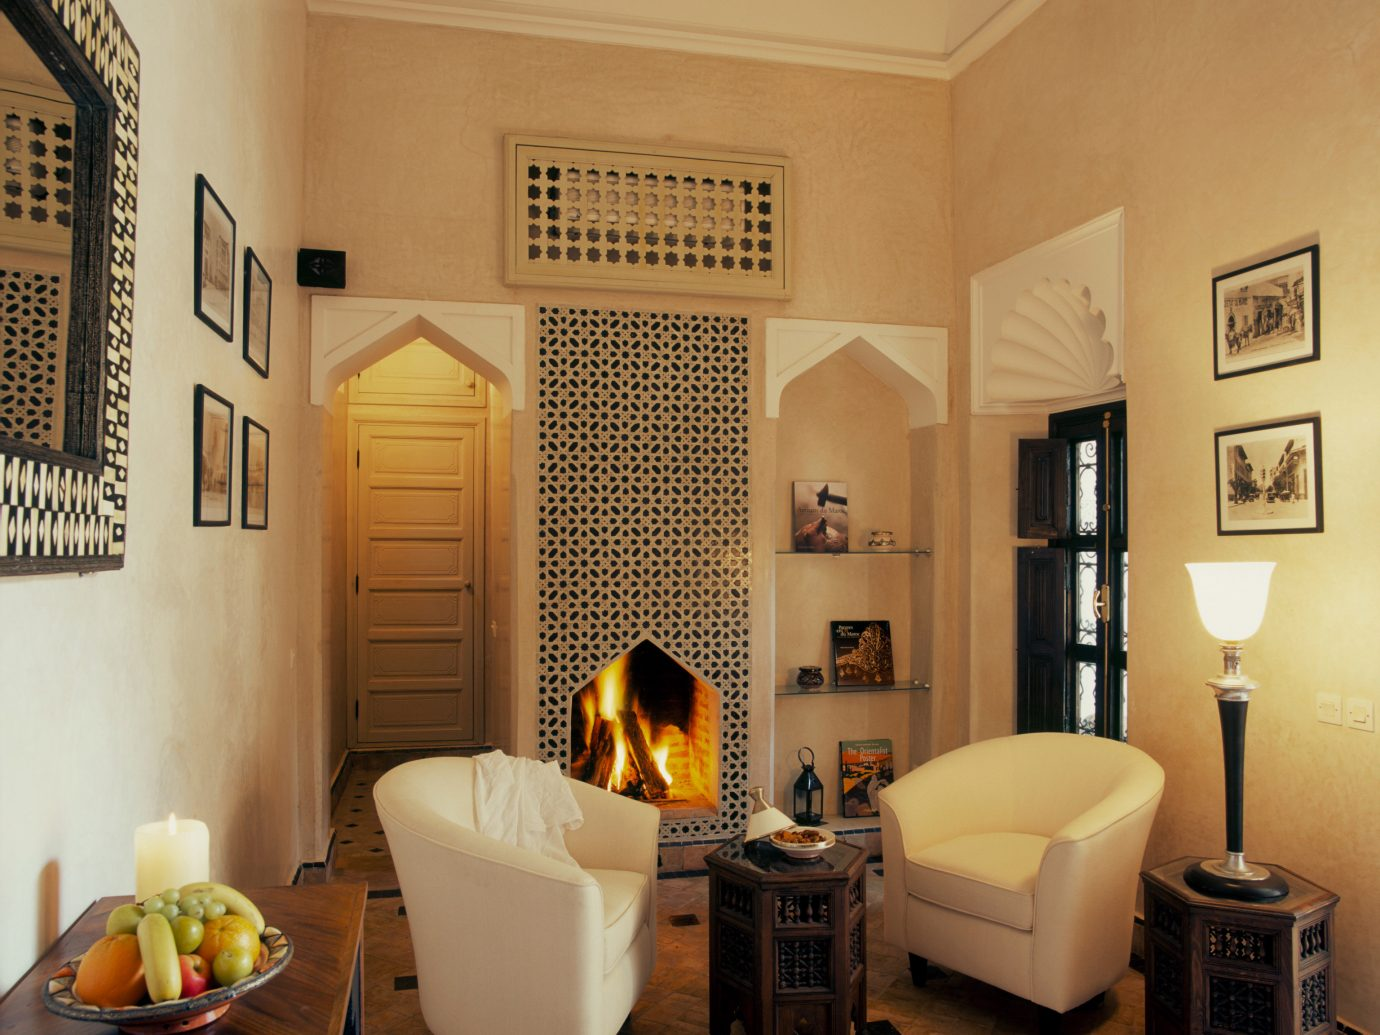 Living room at Dar Les Cigognes, Marrakech, Morocco